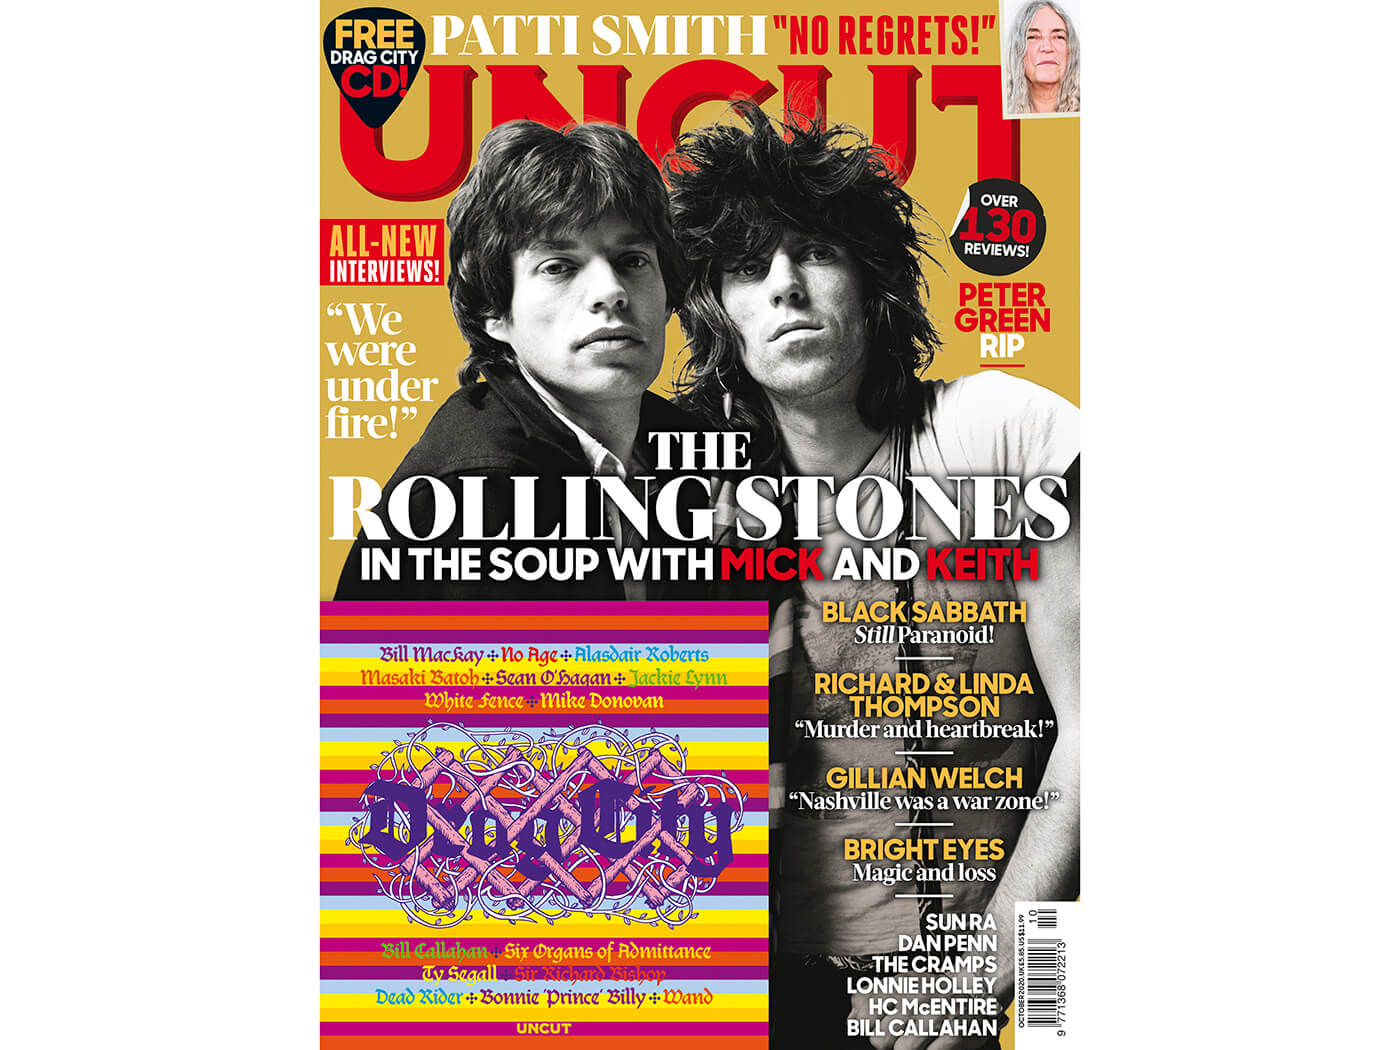 The new Uncut: the Rolling Stones, Drag City CD, Patti Smith, Peter Green RIP, Gillian Welch and more